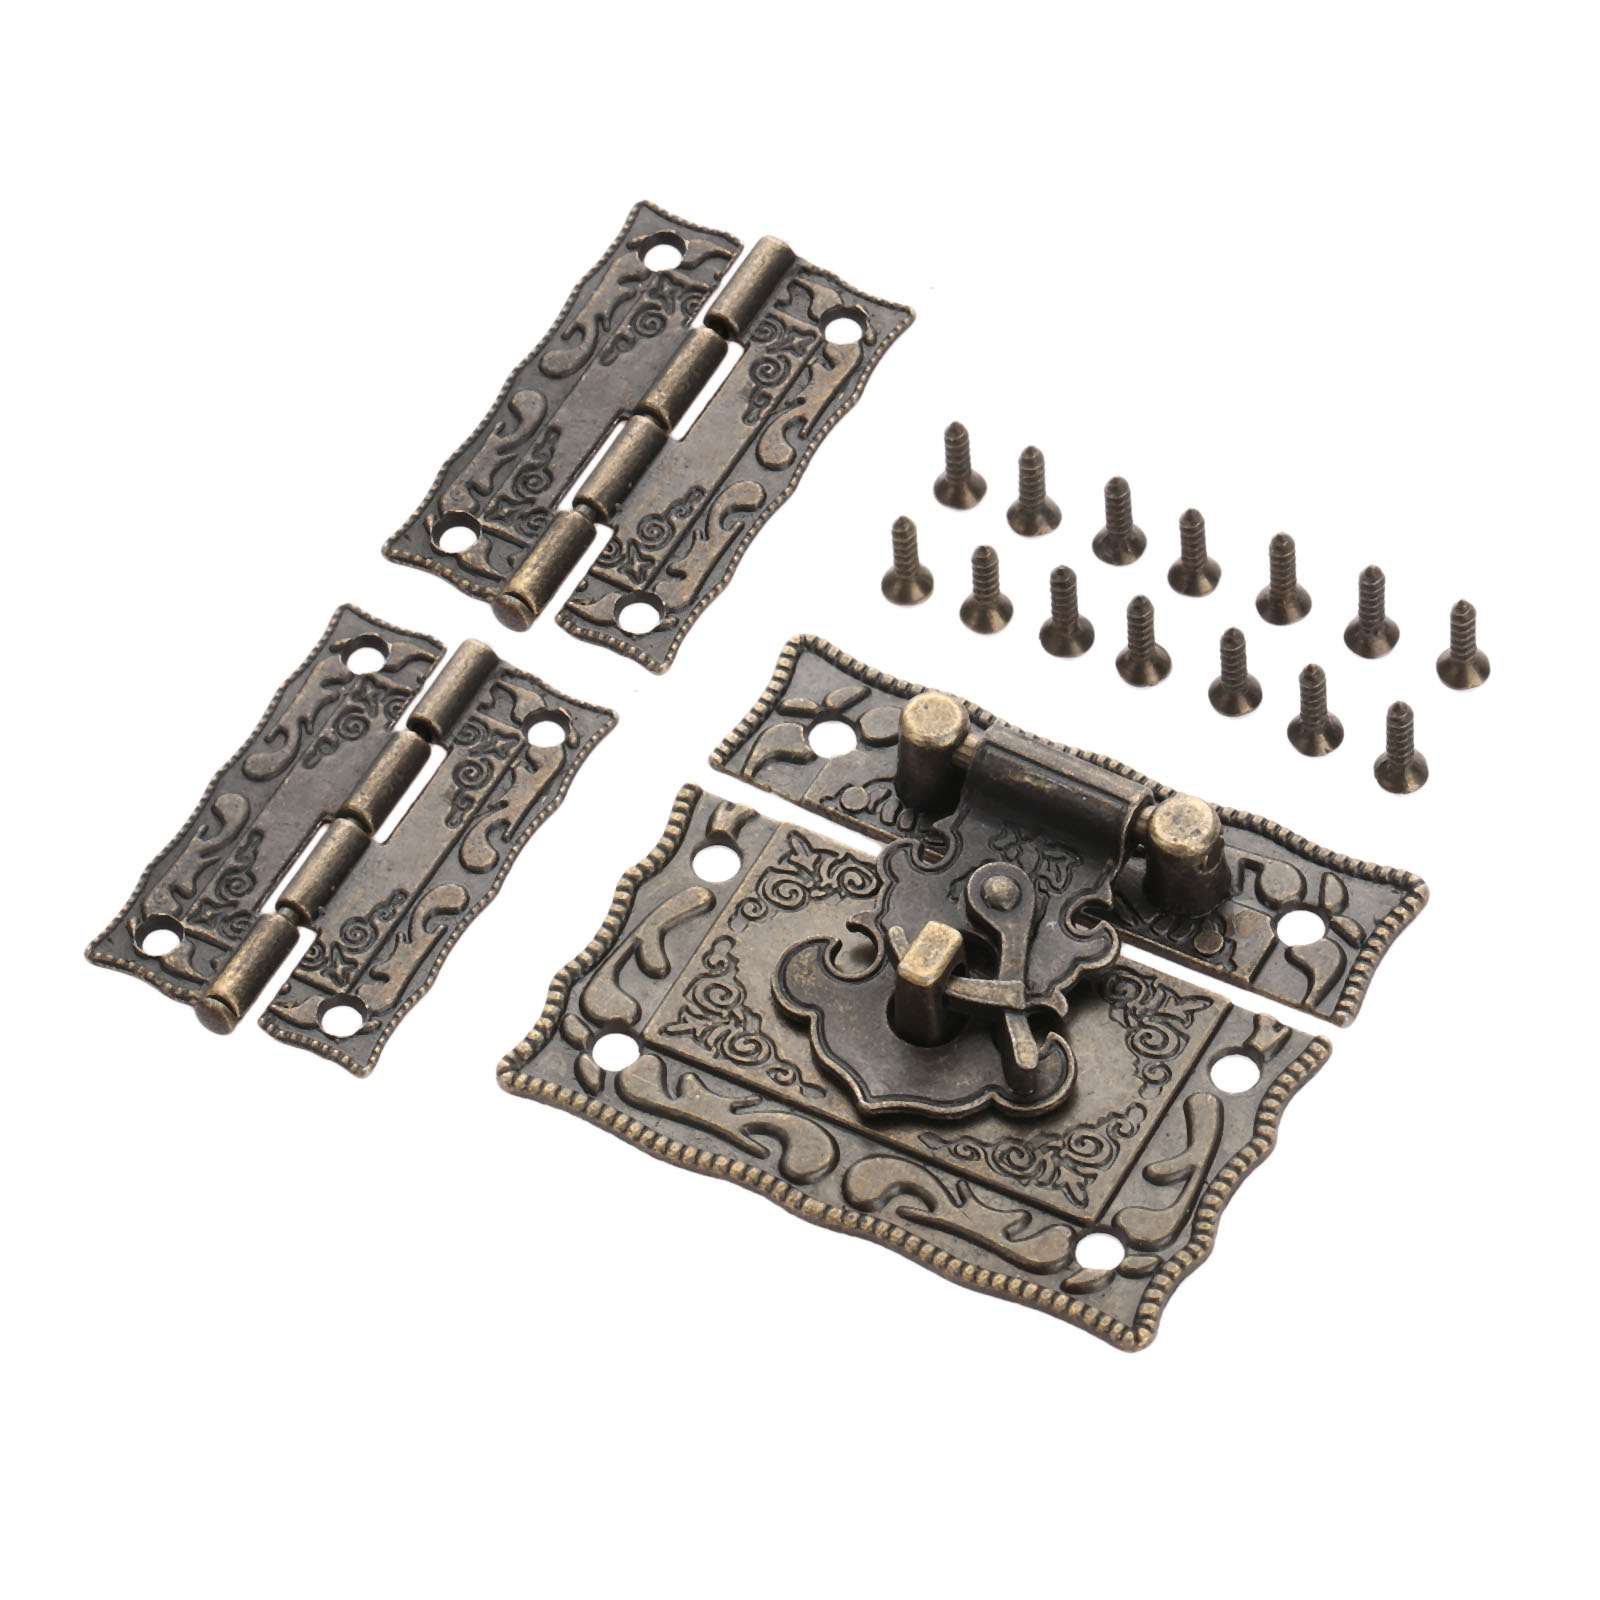 Antique Bronze Padlock Lock Jewelry Wood Box Latch Hasp Clasp +2pcs Suitcase Cabinet Hinge Vintage Furniture Decorative Hardware